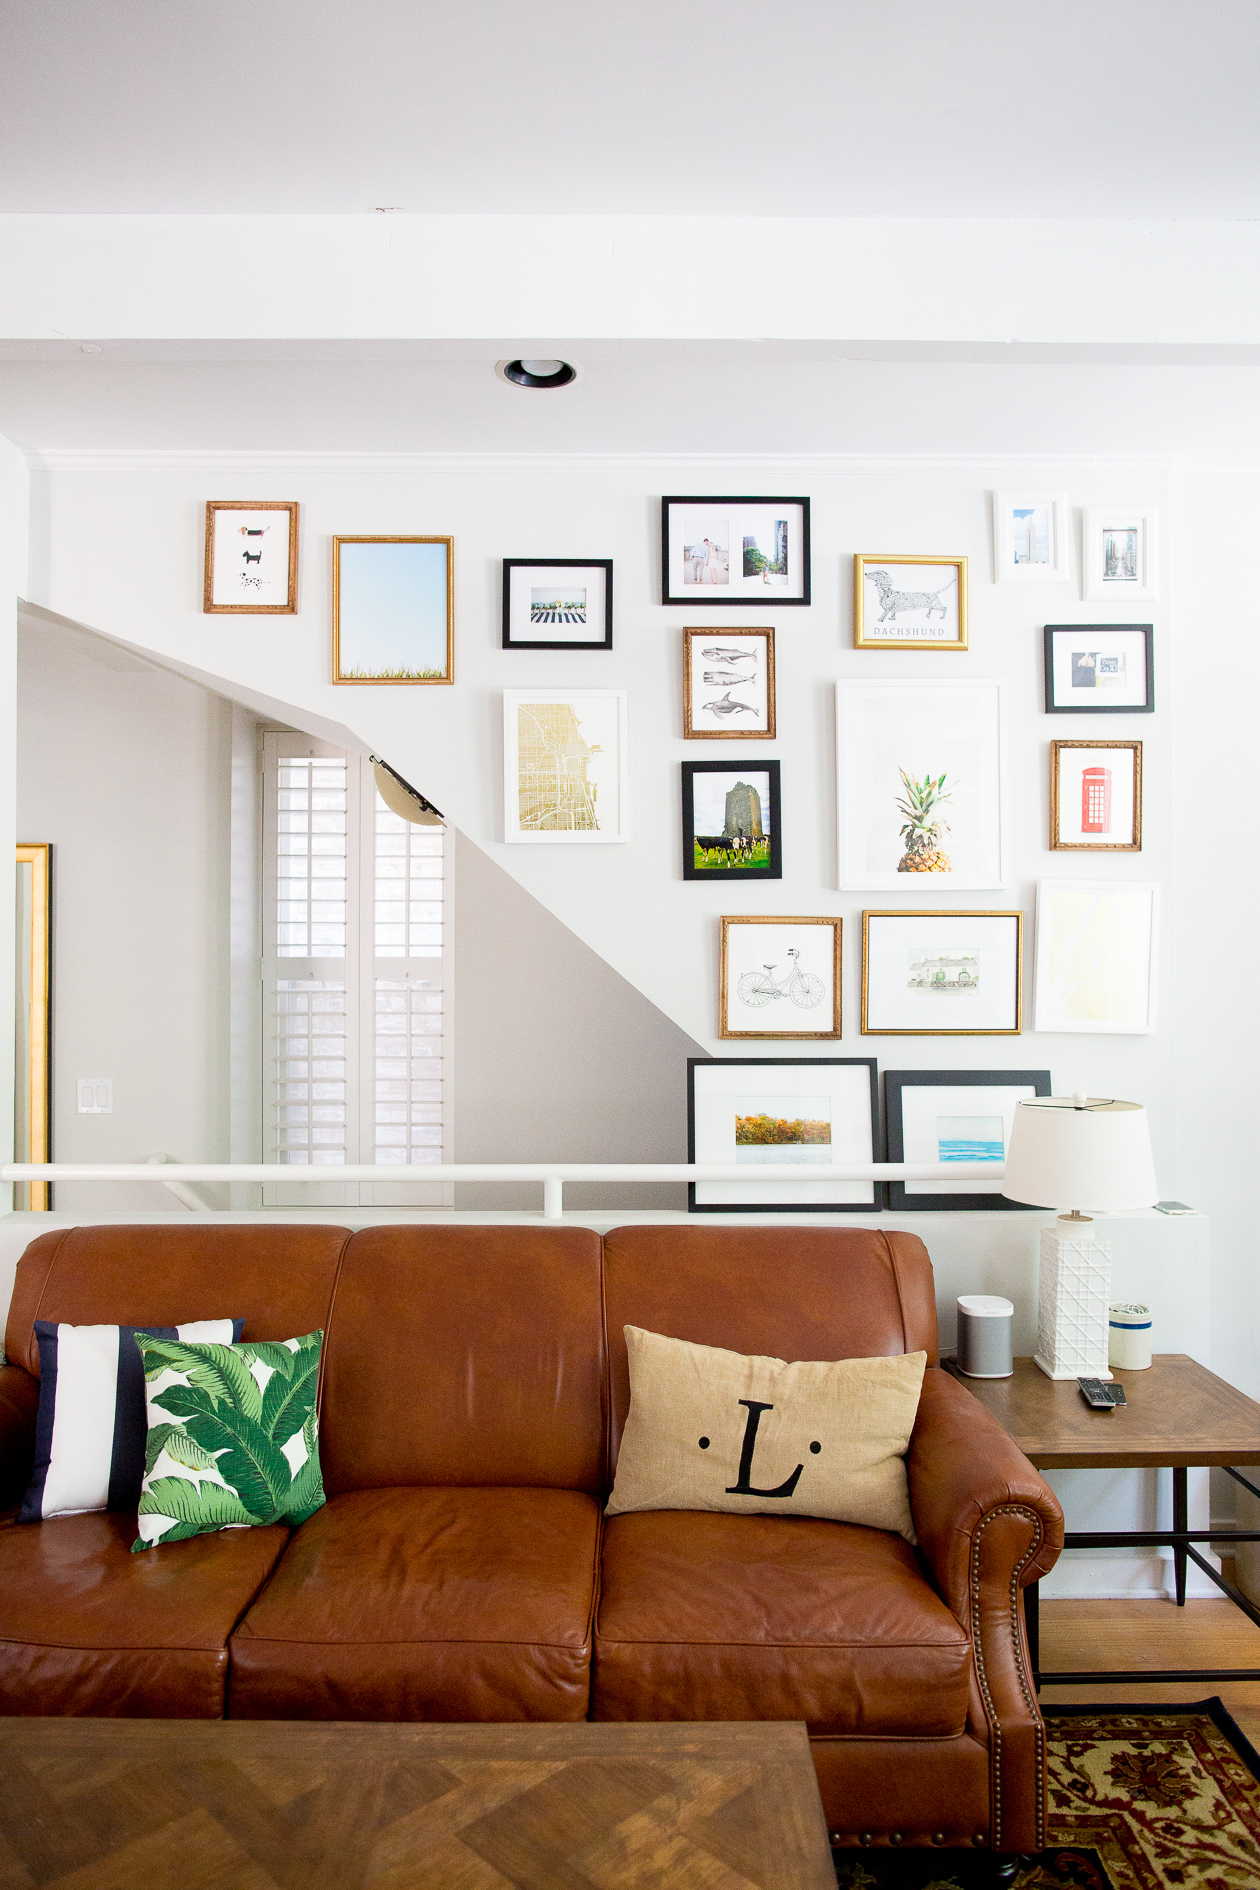 Living room - Minted Artwork